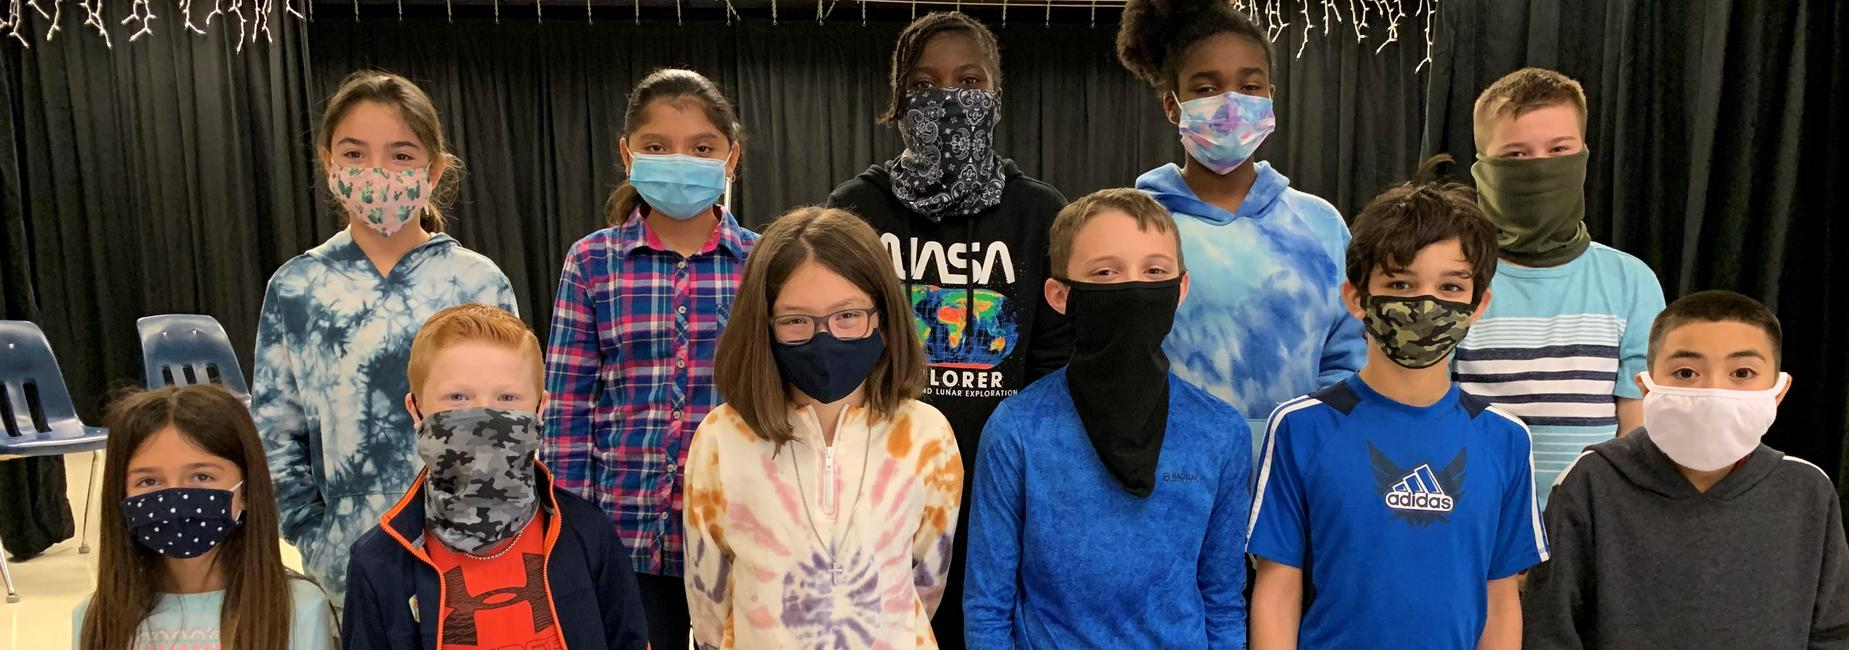 group of kids wearing facemasks